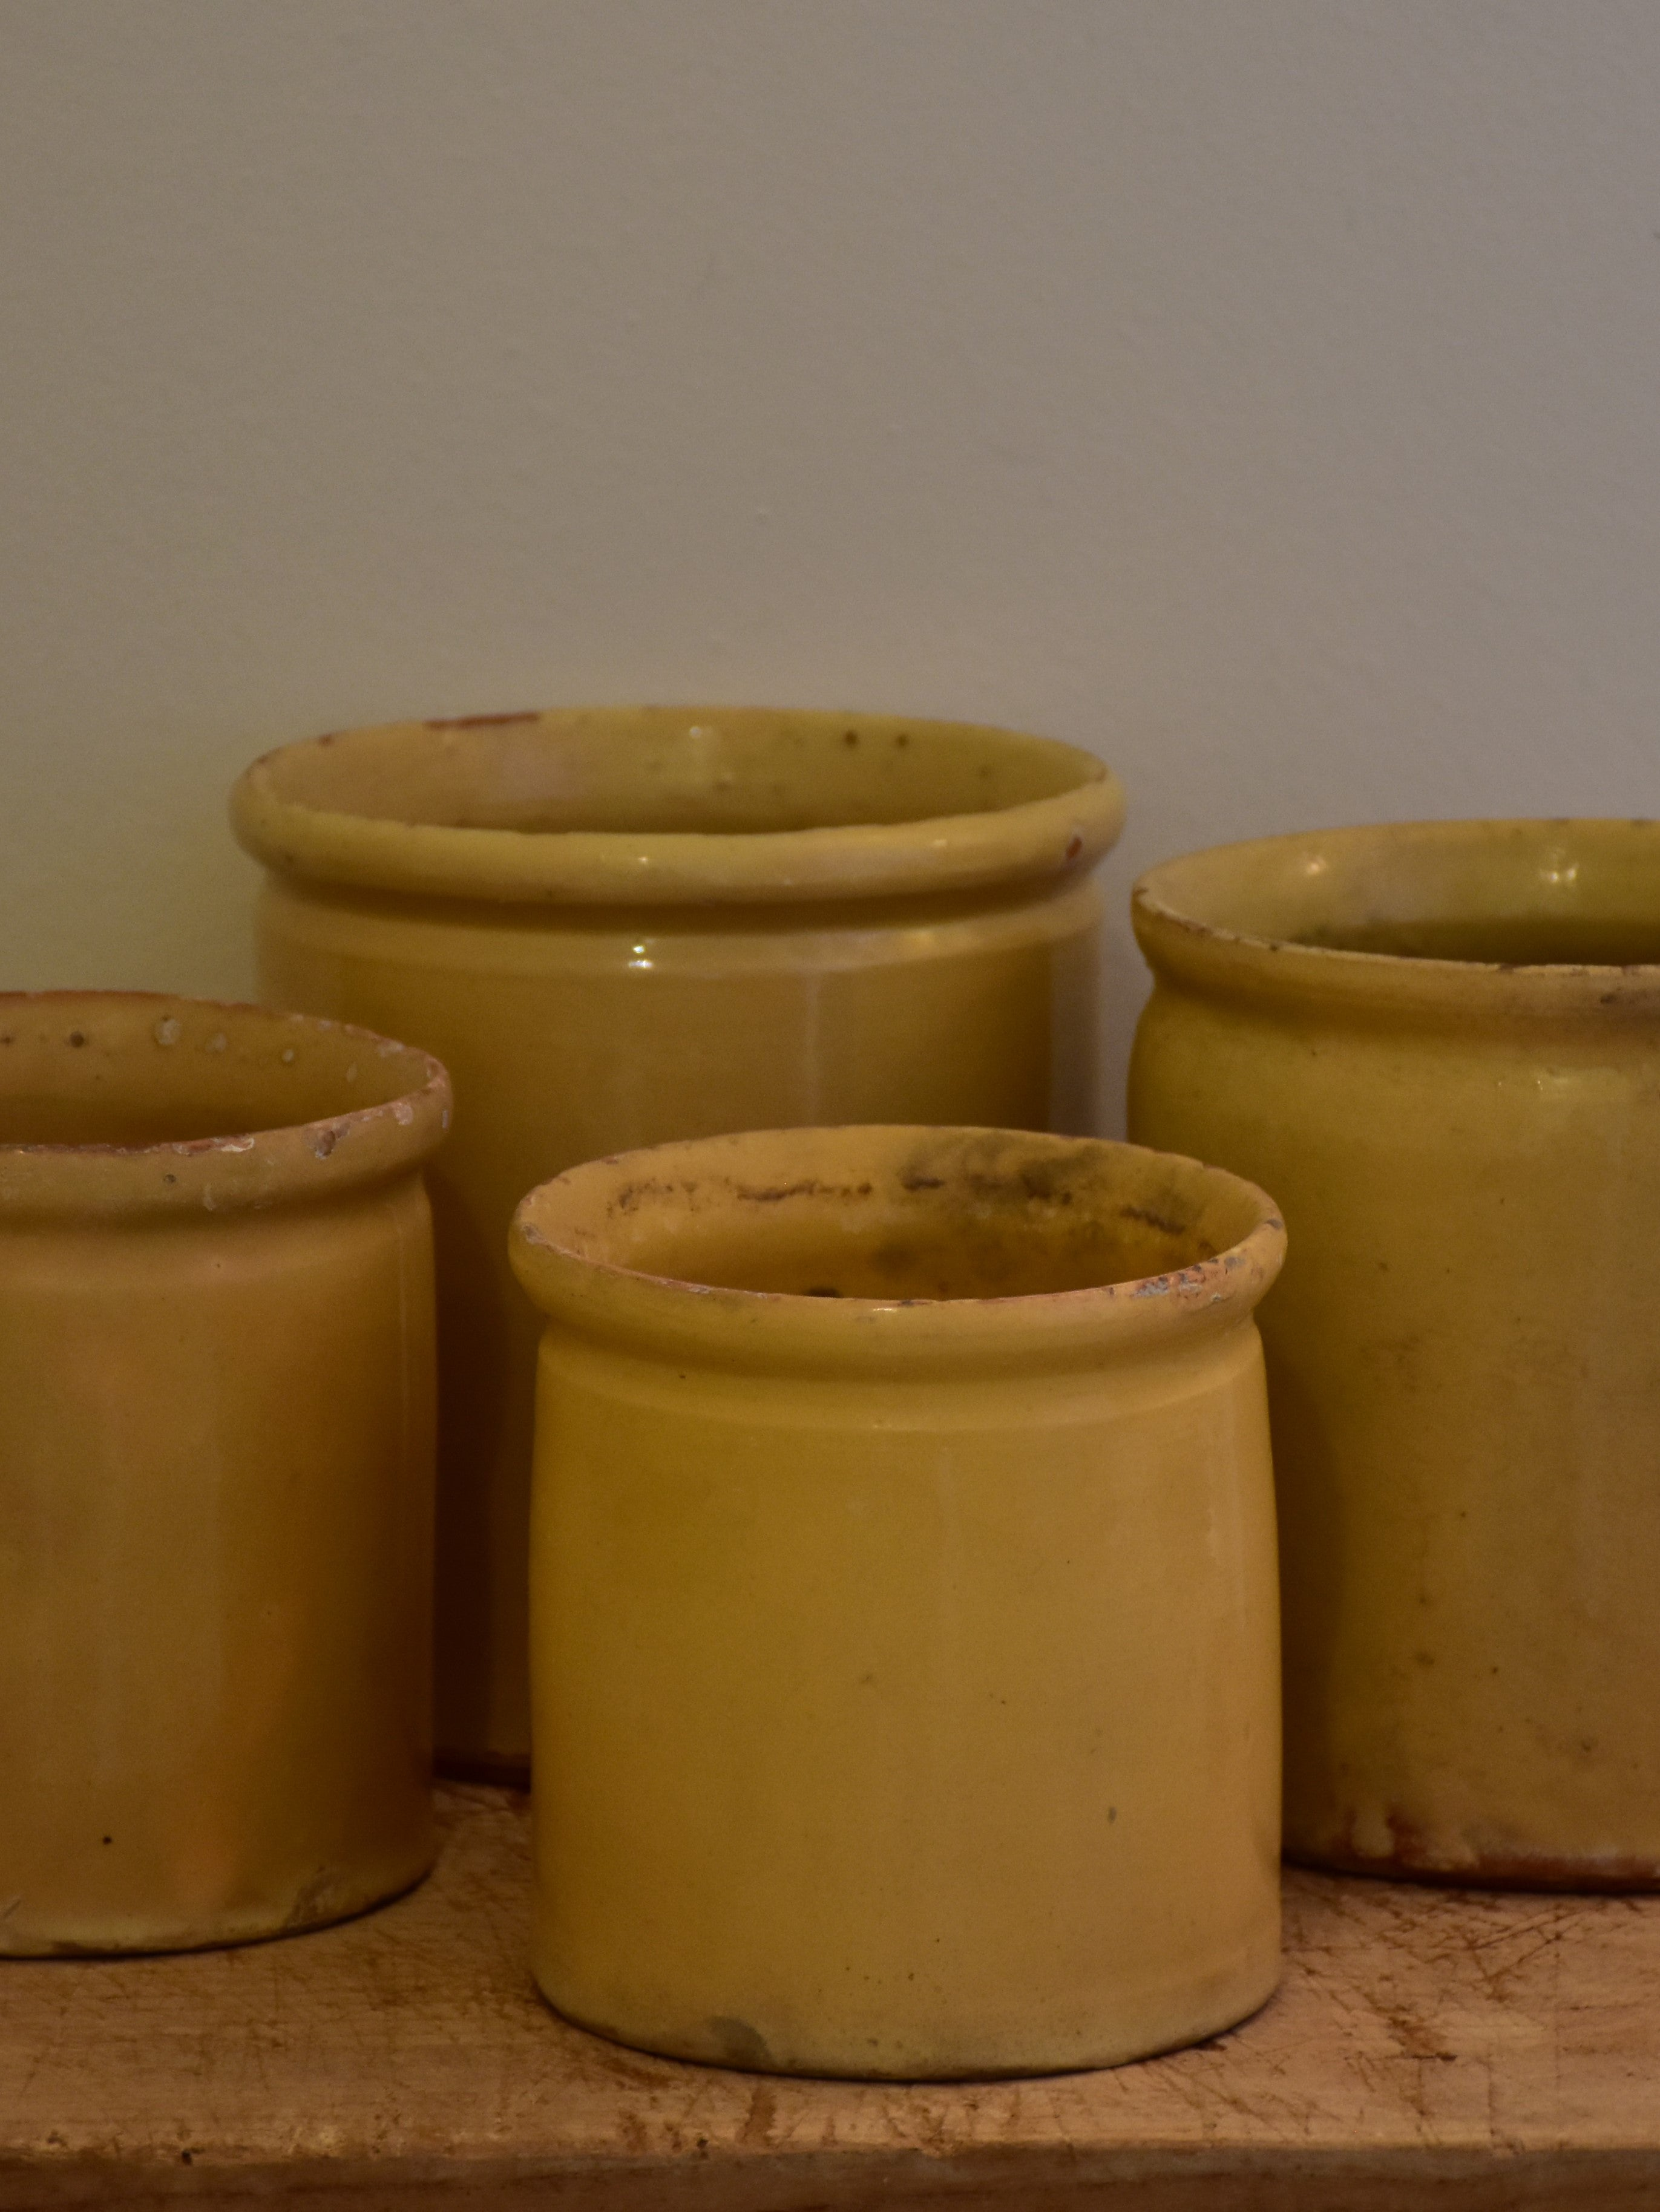 19th century French yellow ware preserving jar – four